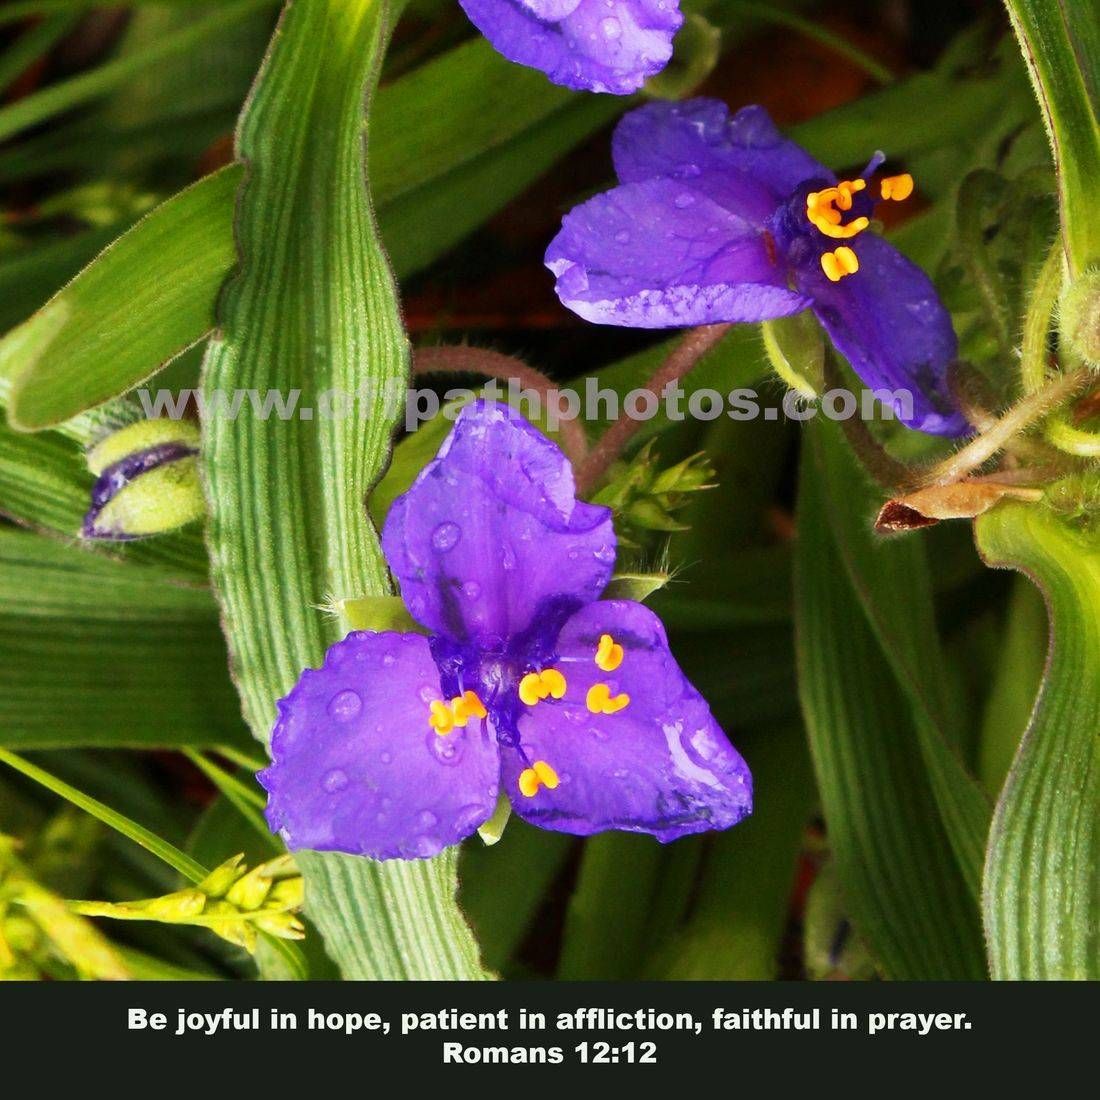 photography for sale, wildflowers, nature, Scripture, Bible, Romans, prayer